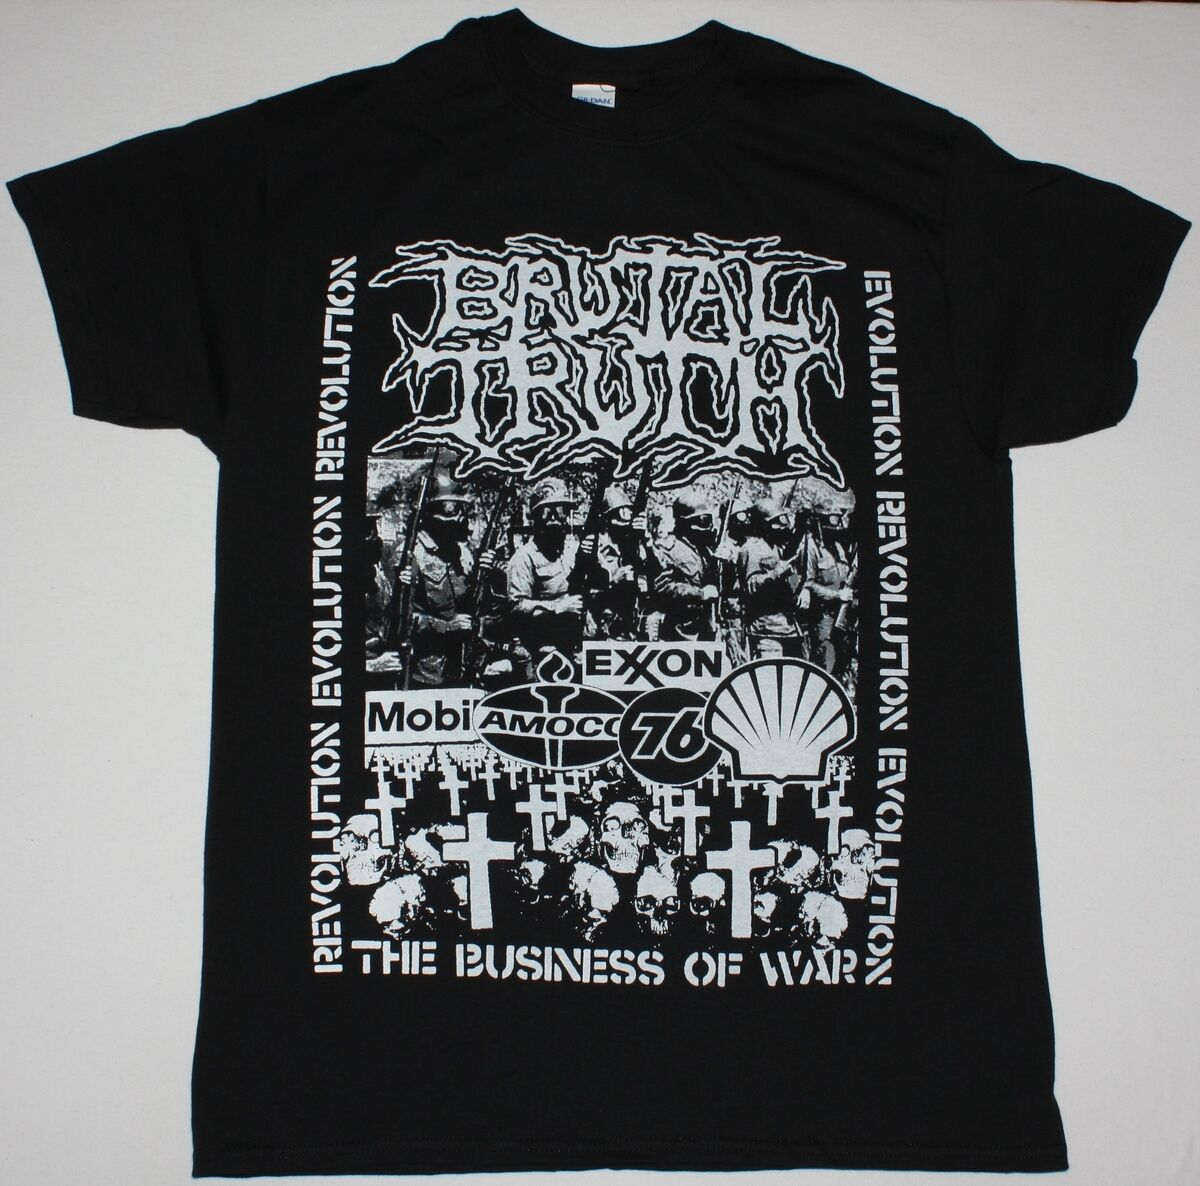 BRUTAL TRUTH EVOLUTION THROUGH REVOLUTION DEATH GRINDCORE NEW BLACK T SHIRT Cheap Wholesale tees,100% Cotton Tee Shirt